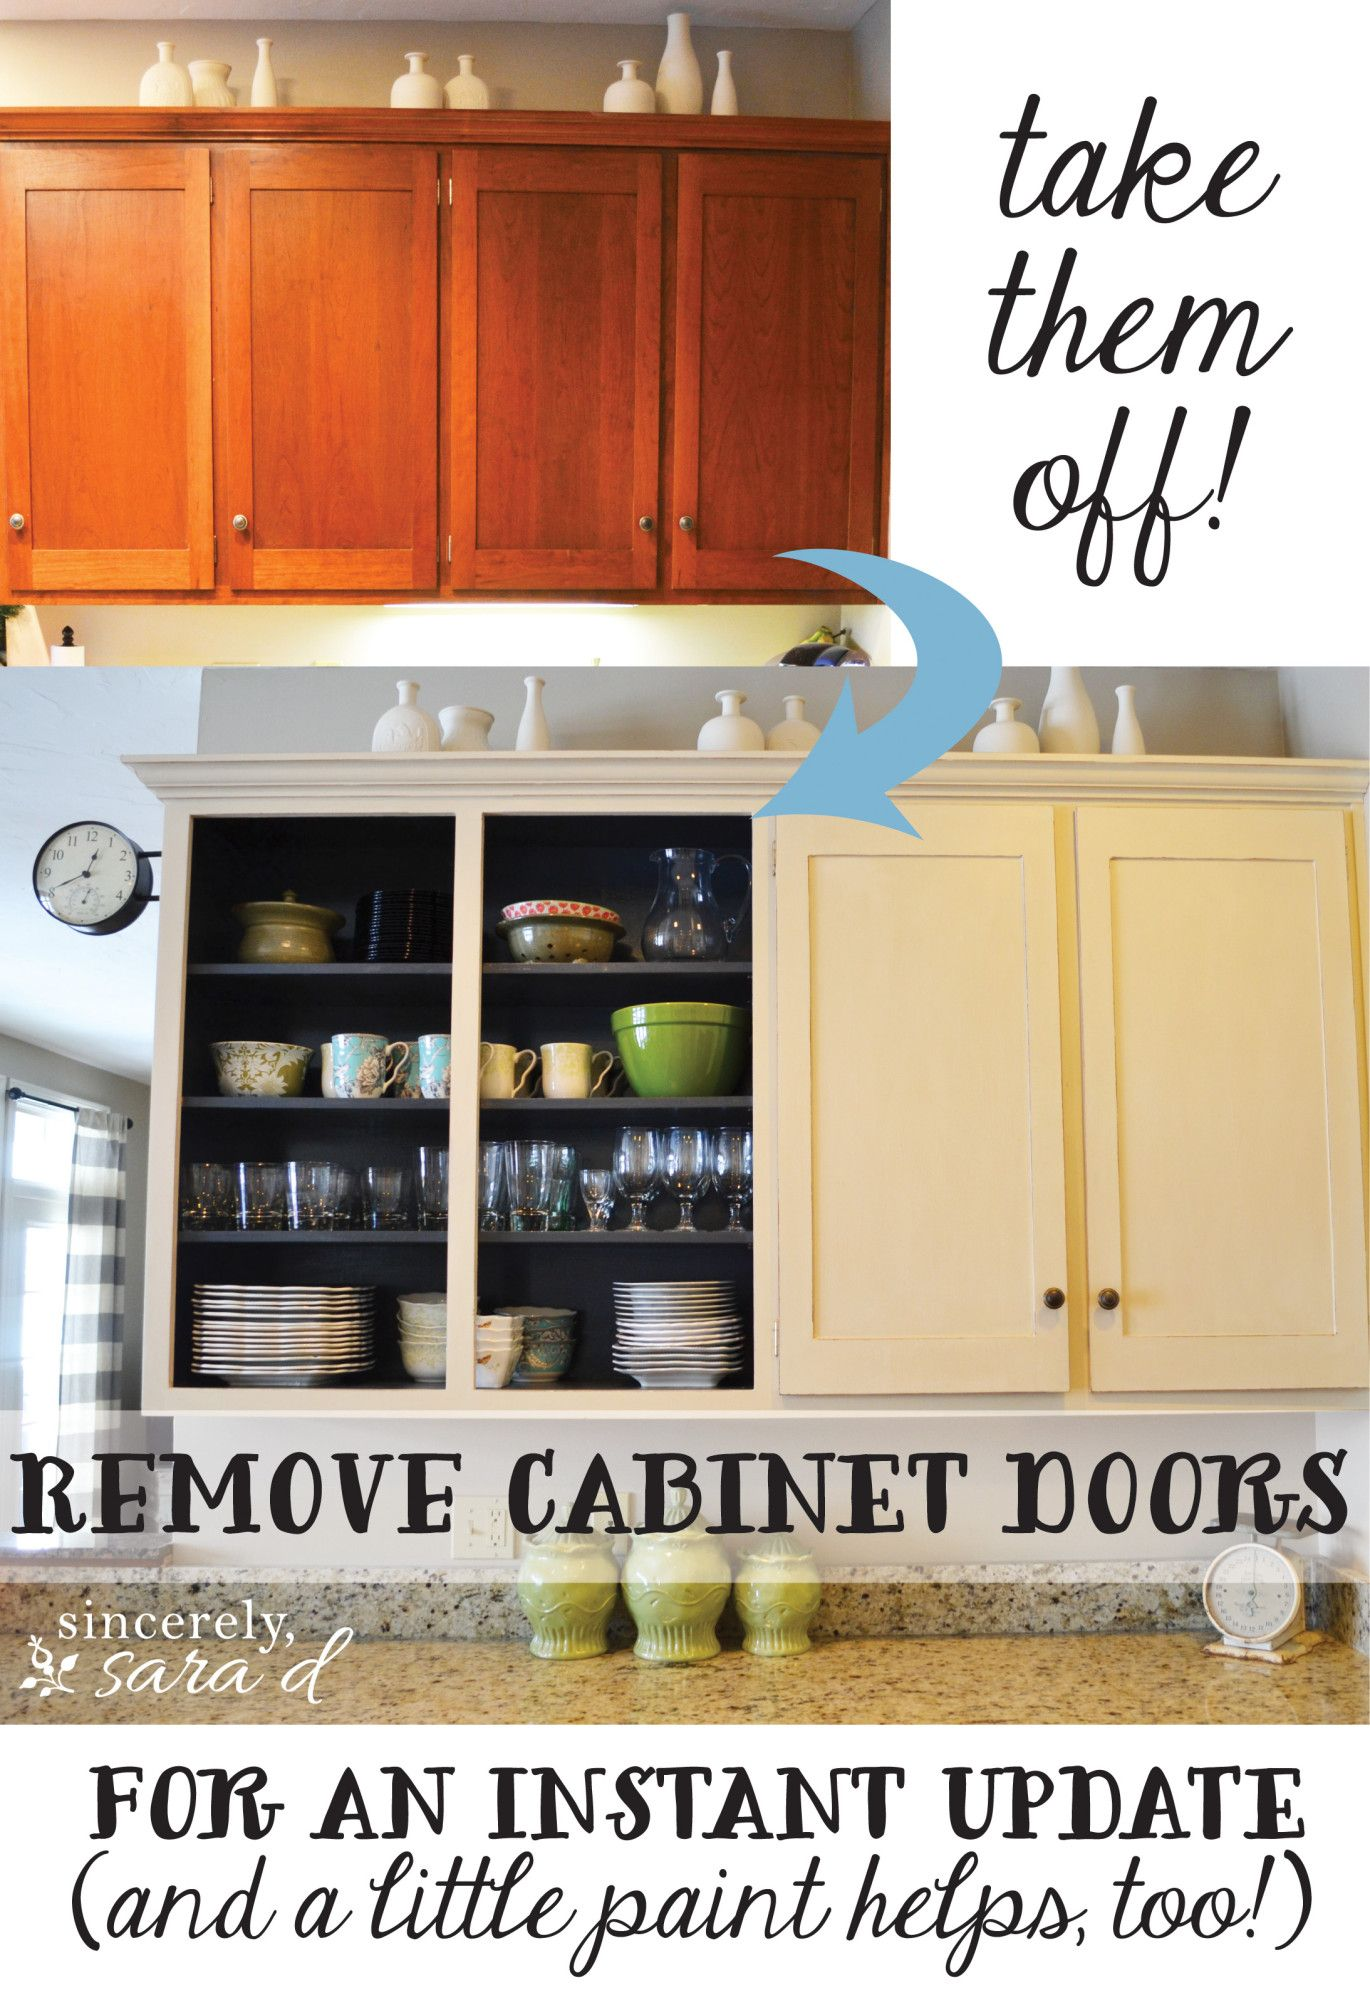 project gallery the kim six fix repurpose pinterest custom take them off remove cabinet doors